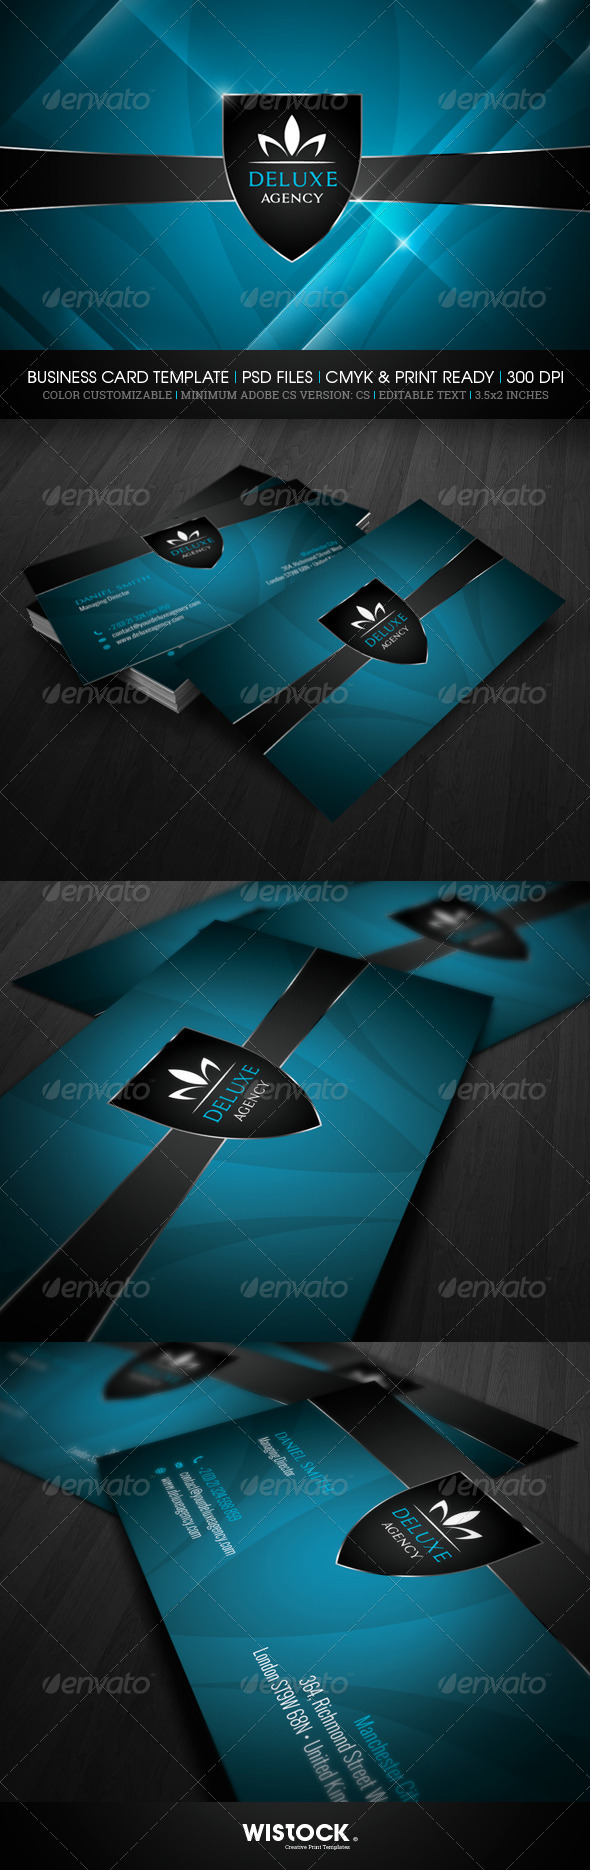 GraphicRiver Deluxe Agency Business Card 7346712